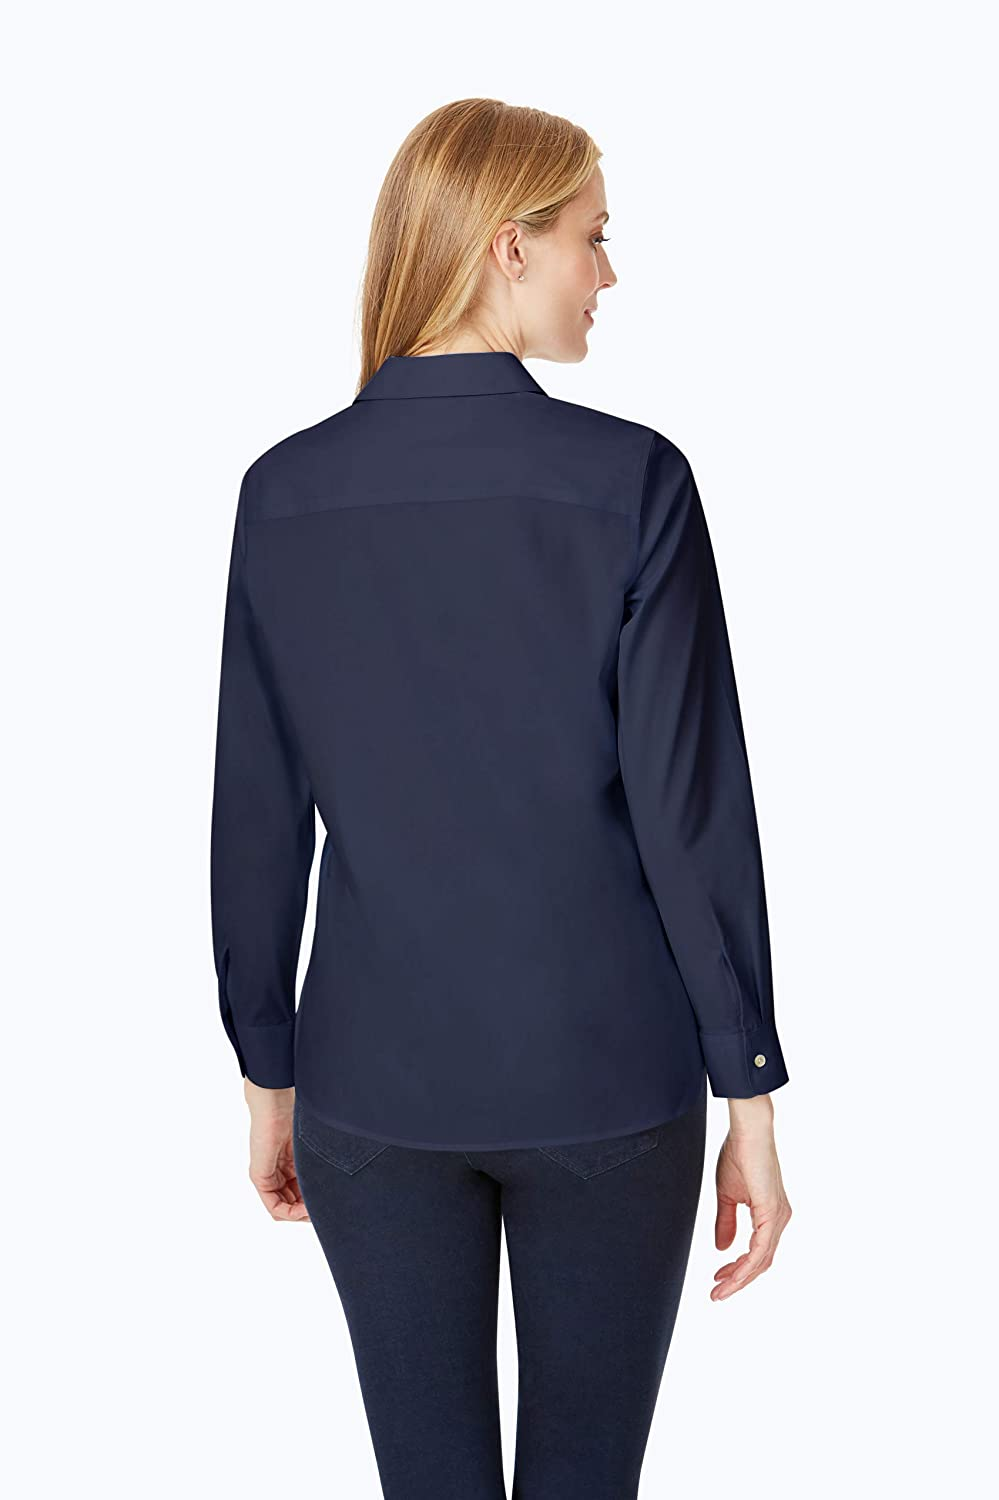 Foxcroft Women's Kylie Non-Iron Ls Stretch Shirt Navy